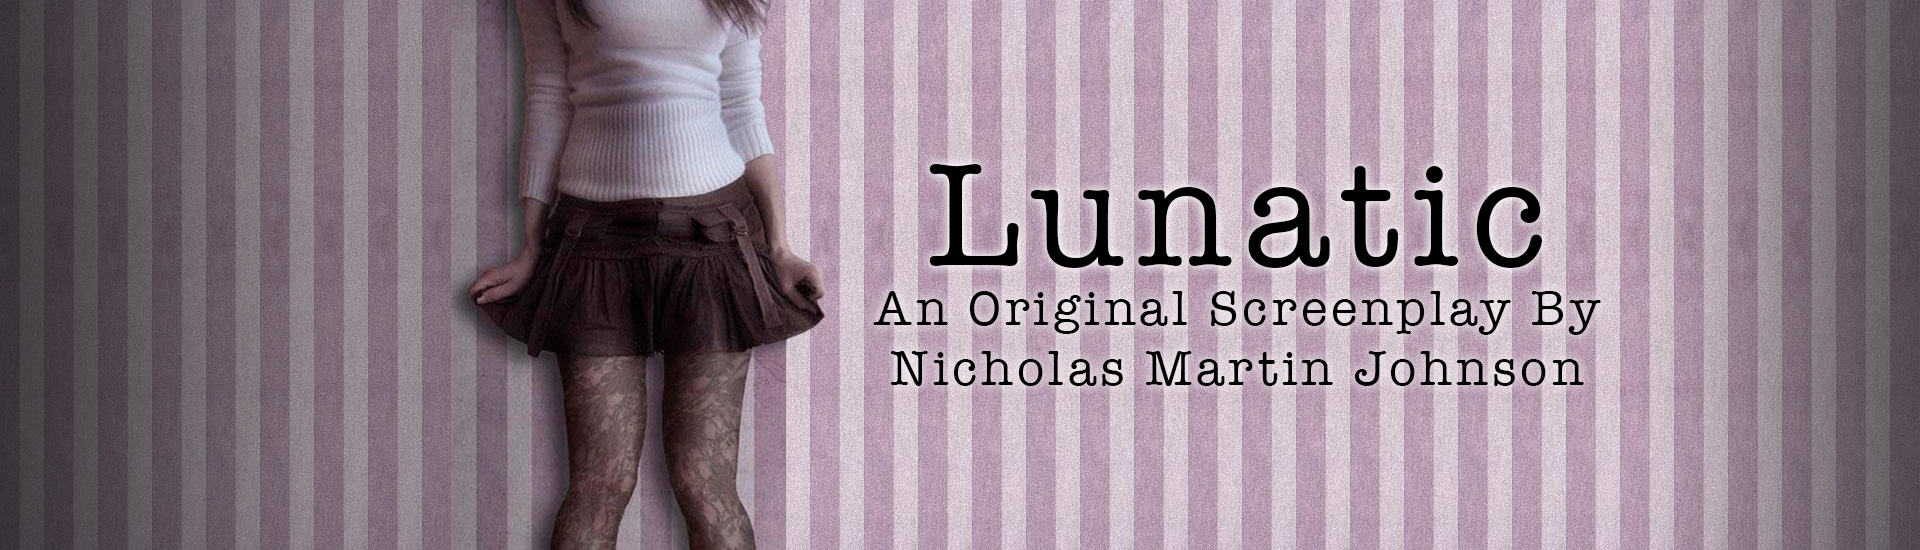 Lunatic | An Original Screenplay by Nicholas Martin Johnson